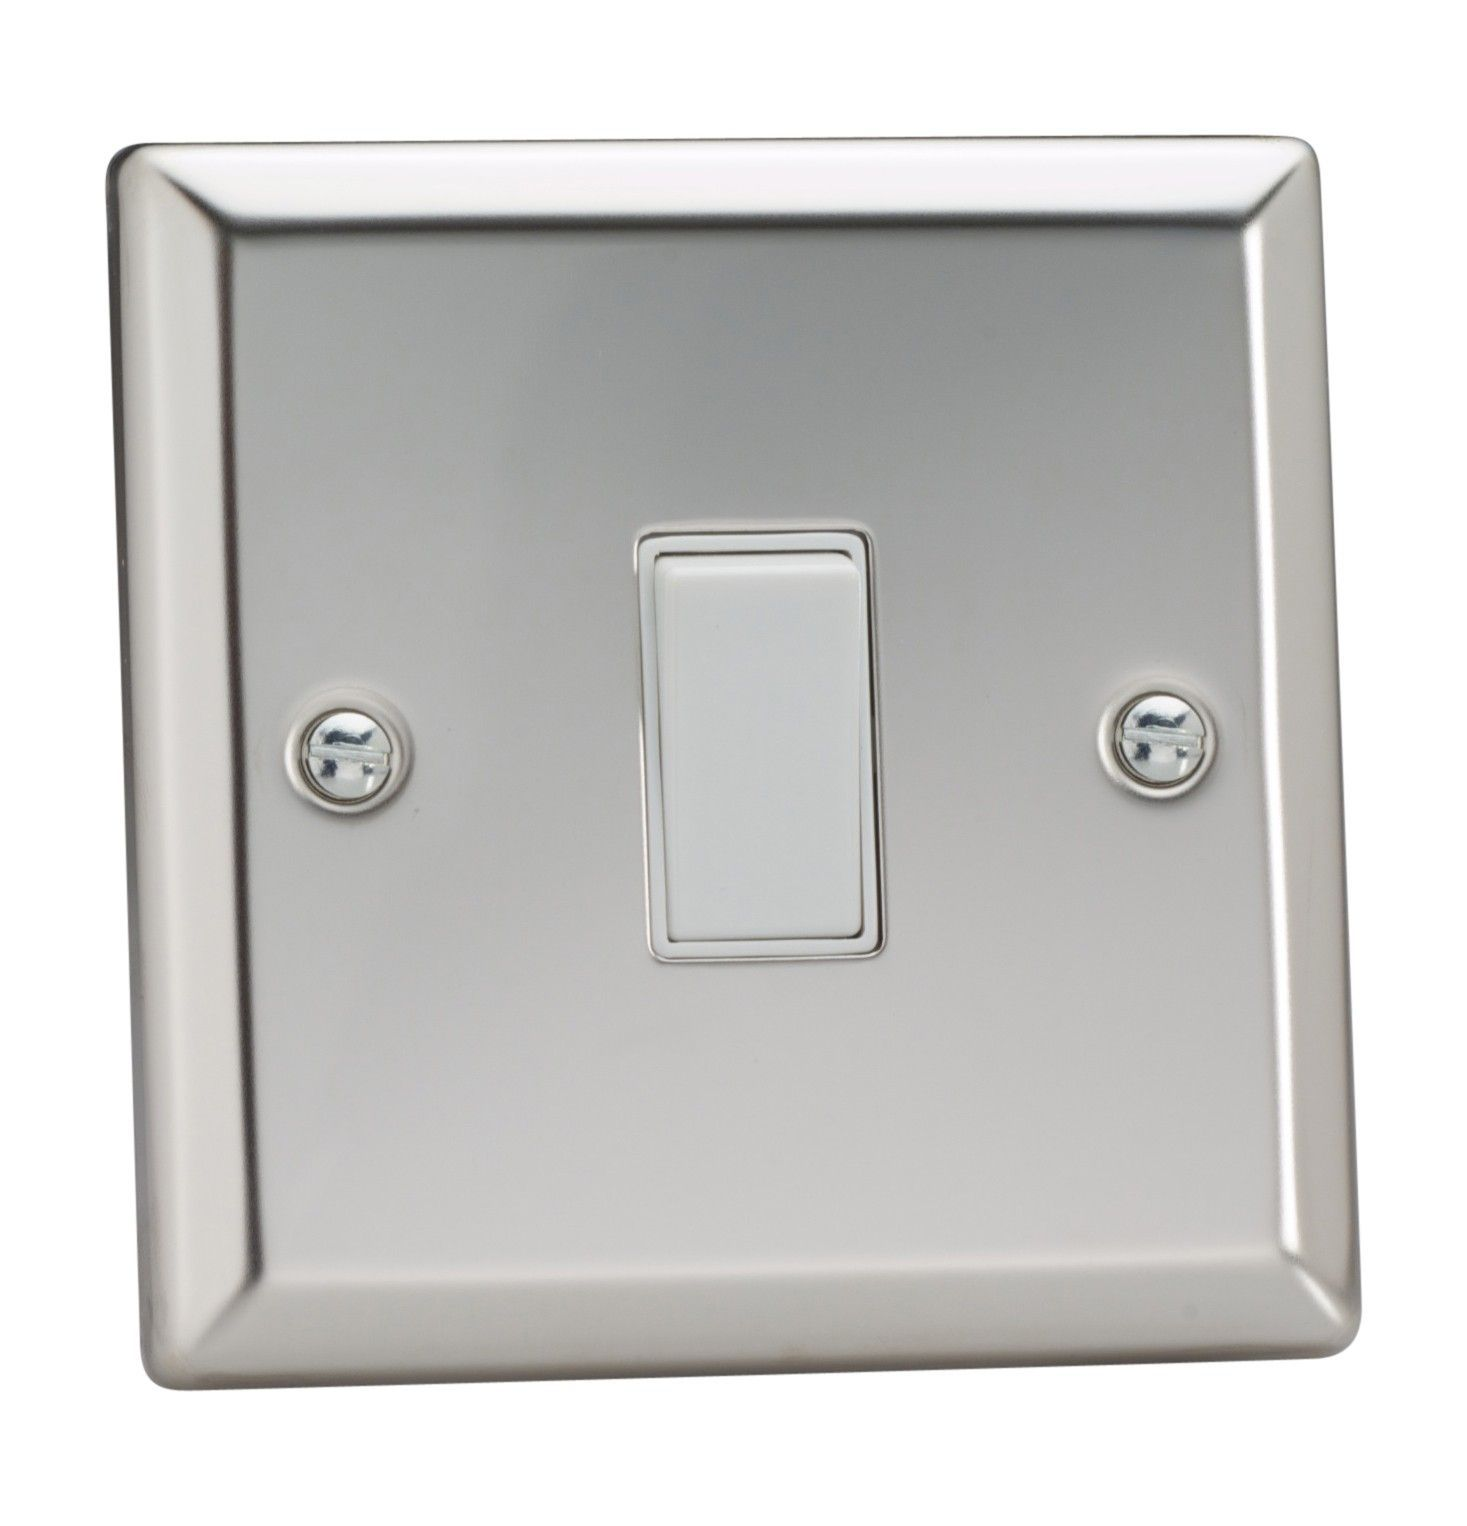 Electrical Fittings Mirror Chrome Varilight Classic 3 Gang 10a 1 Or 2 Way Rocker Light Switch Home Furniture Diy Tallergrafico Com Uy